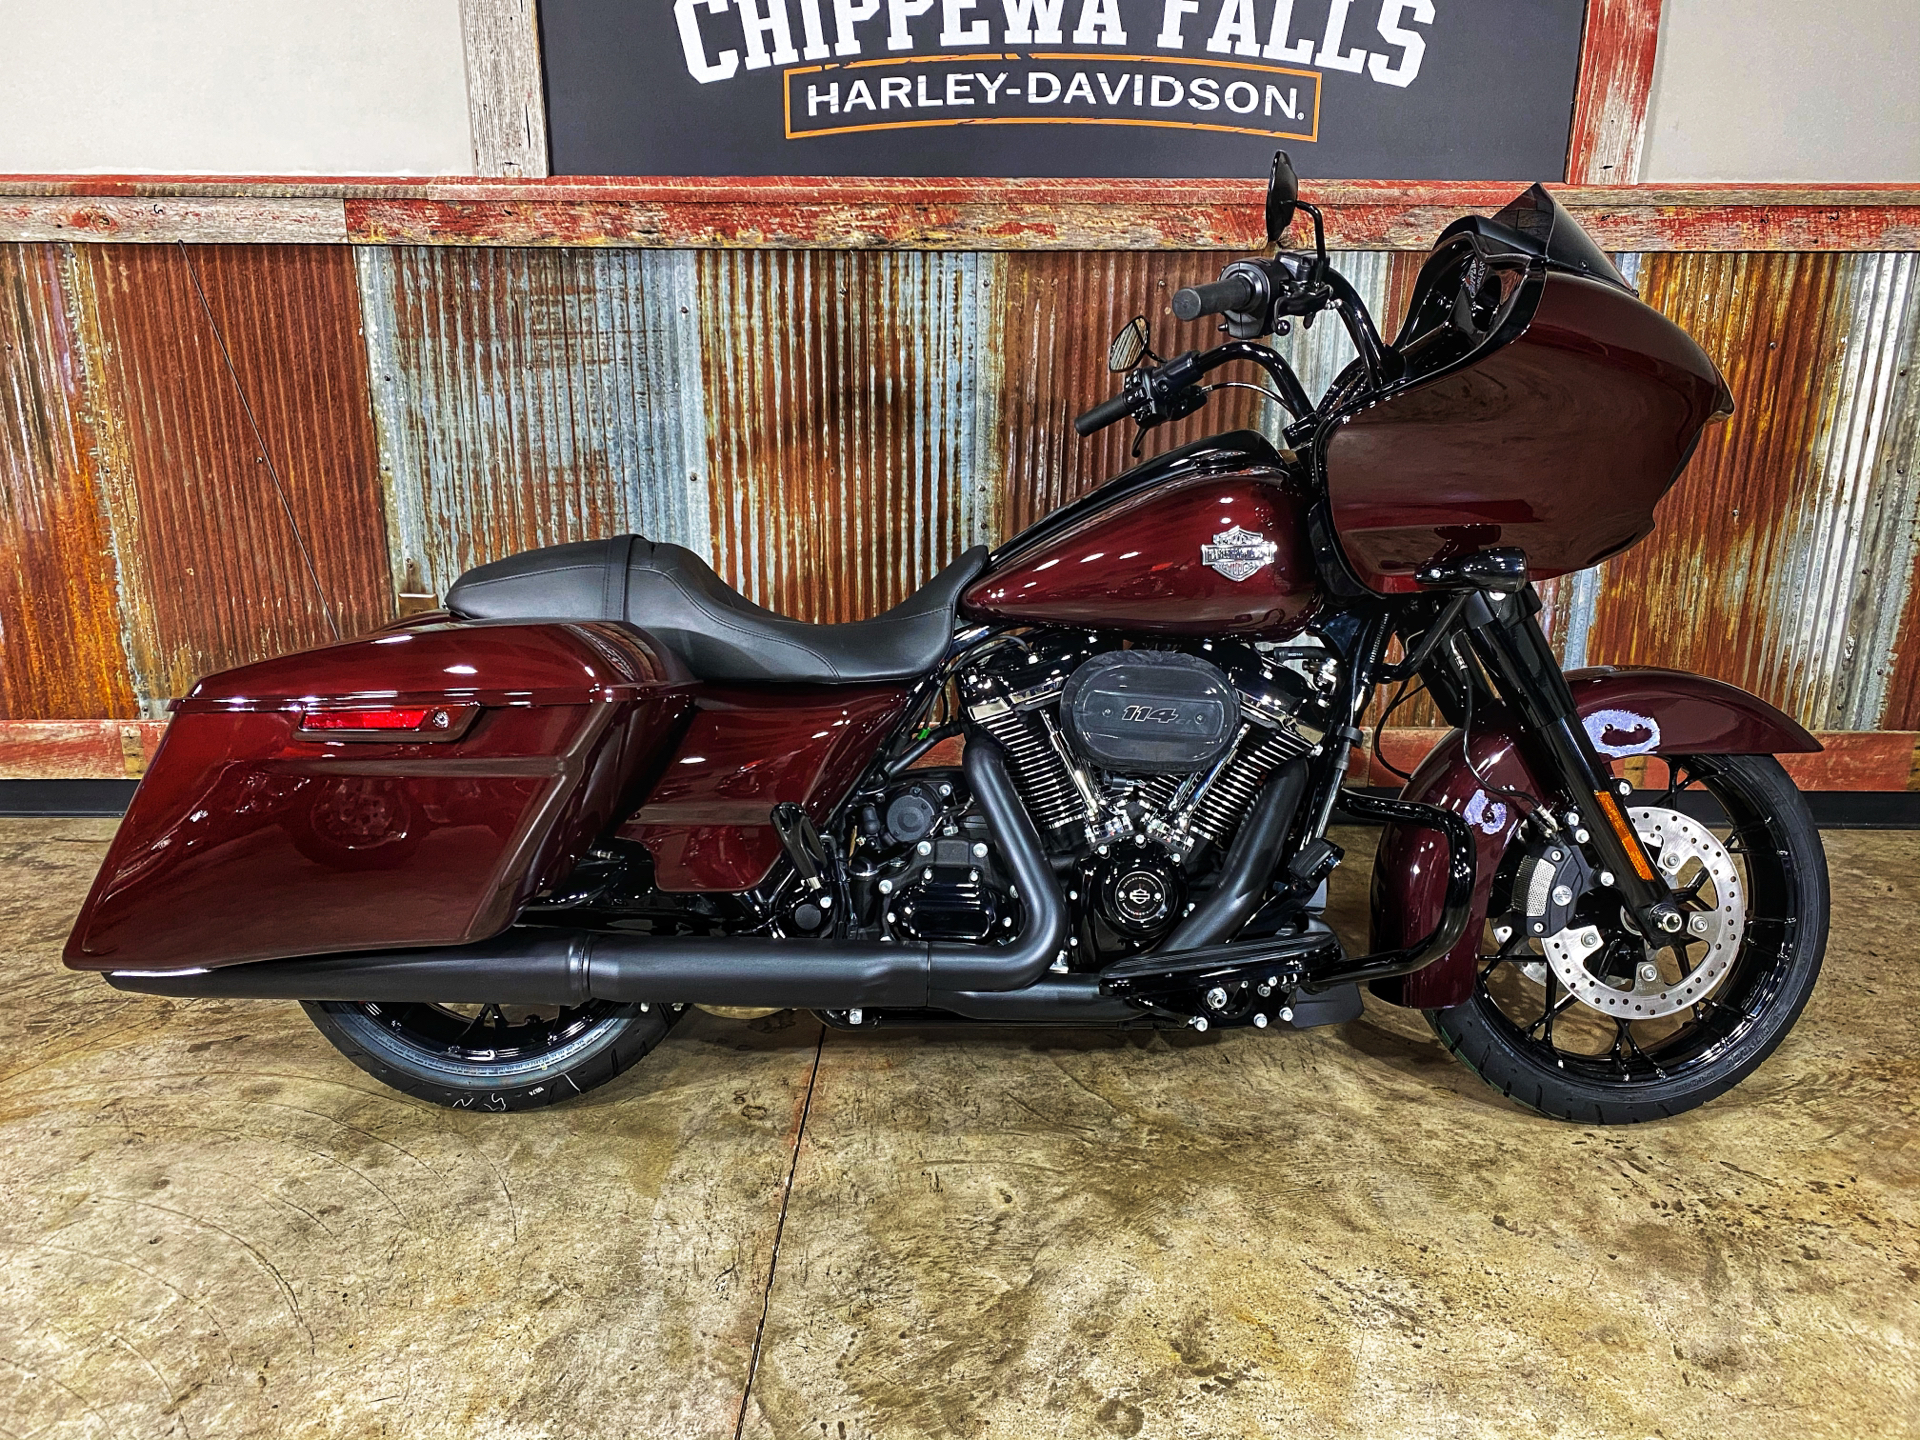 2021 Harley-Davidson Road Glide® Special in Chippewa Falls, Wisconsin - Photo 1